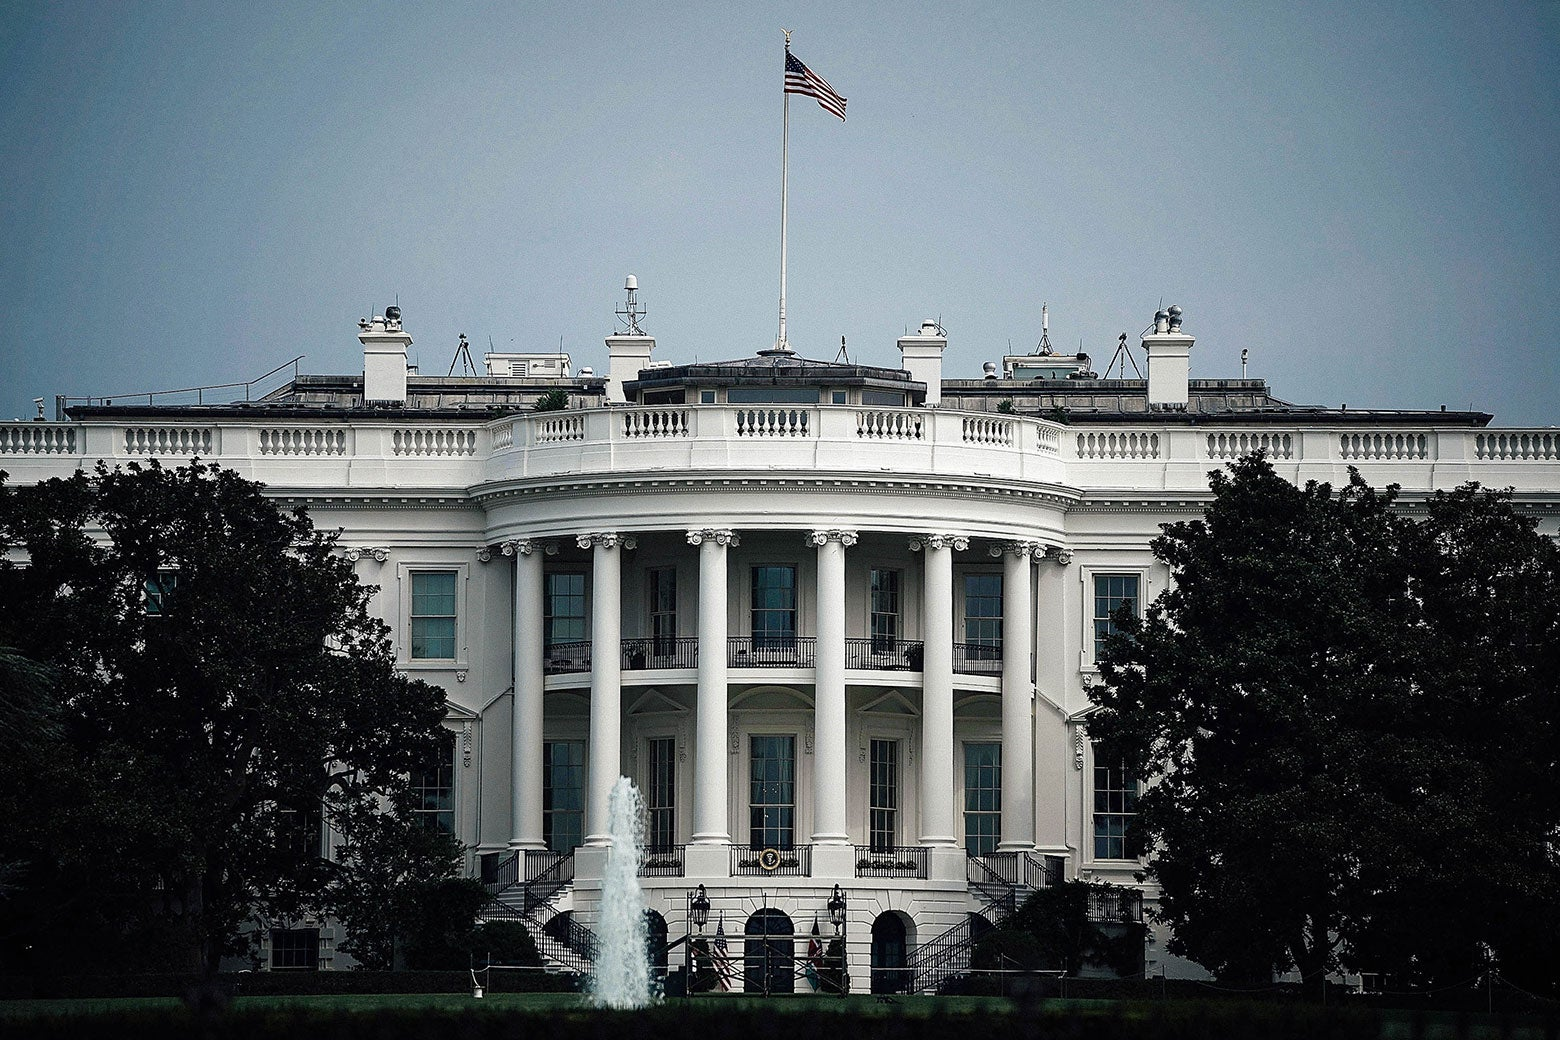 The White House with a flag on top, flown at full staff.